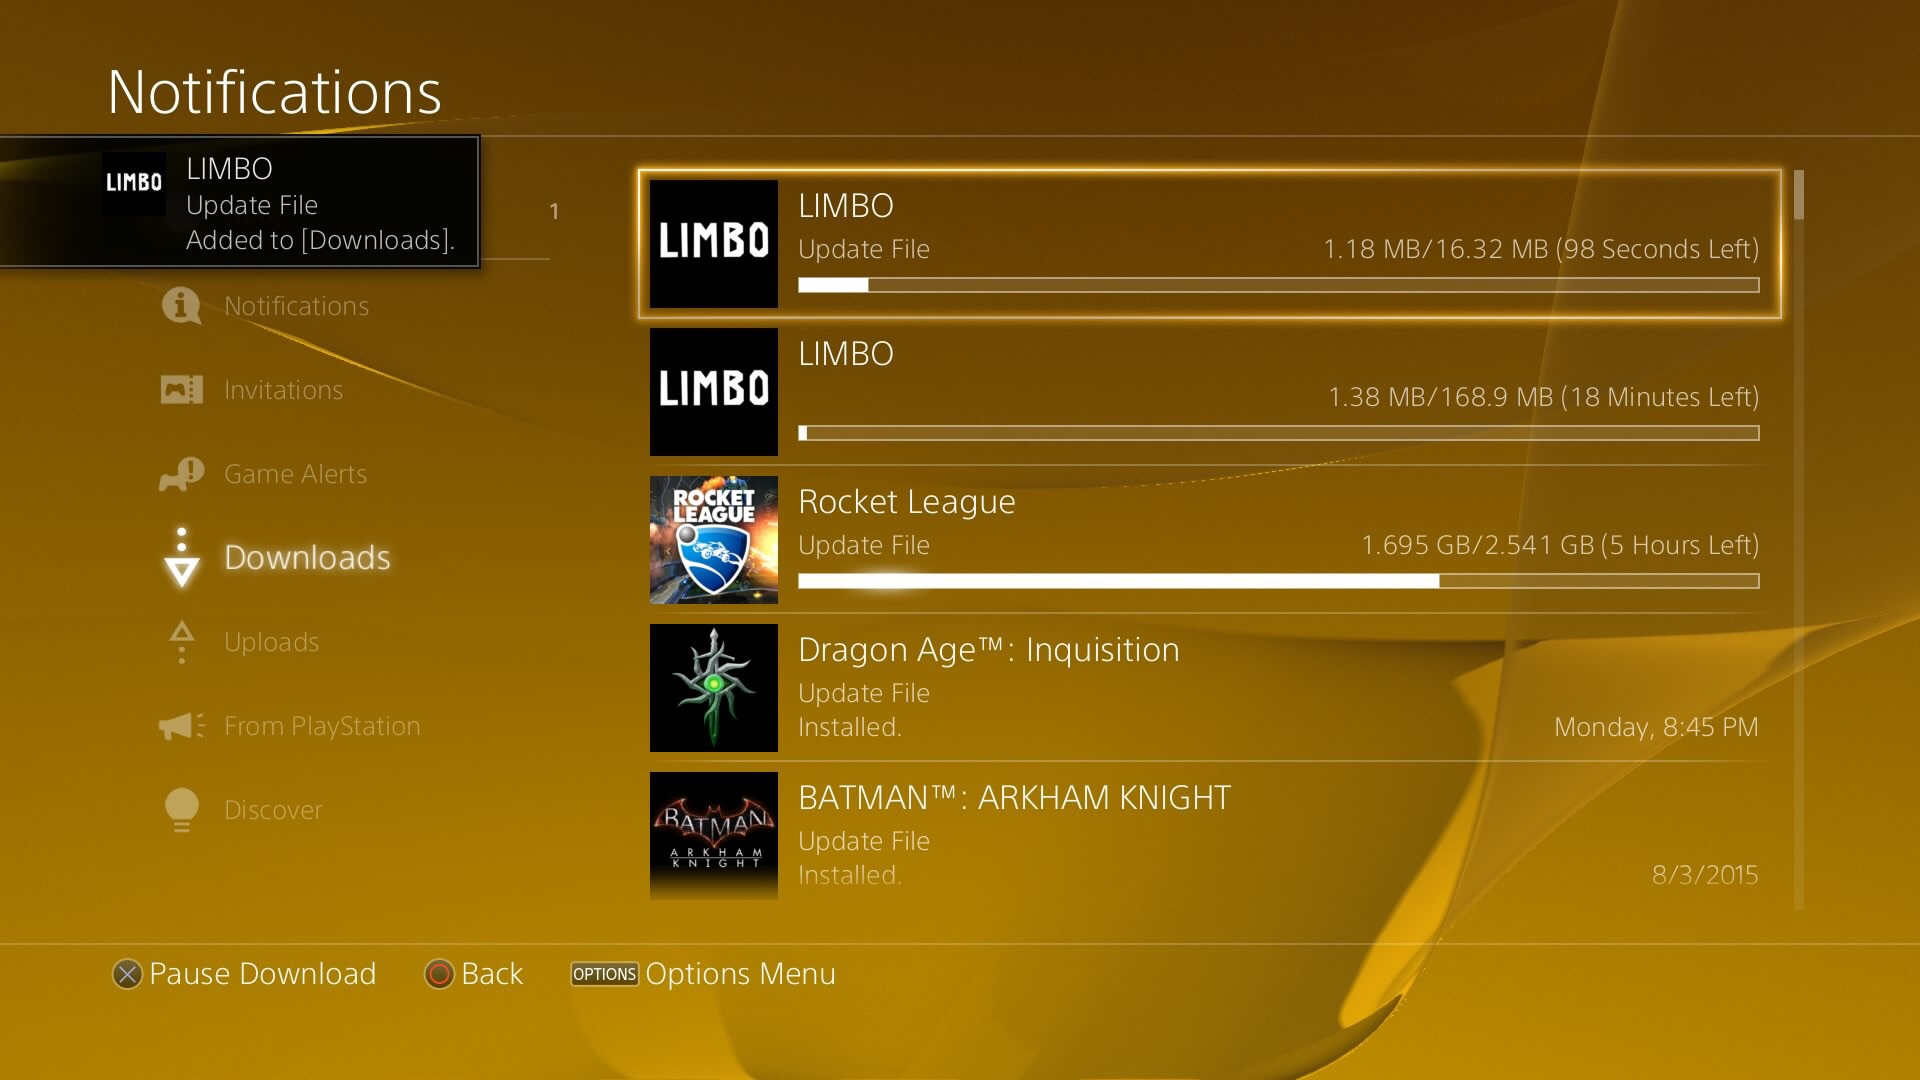 In limbo, where your games will remain for hours.